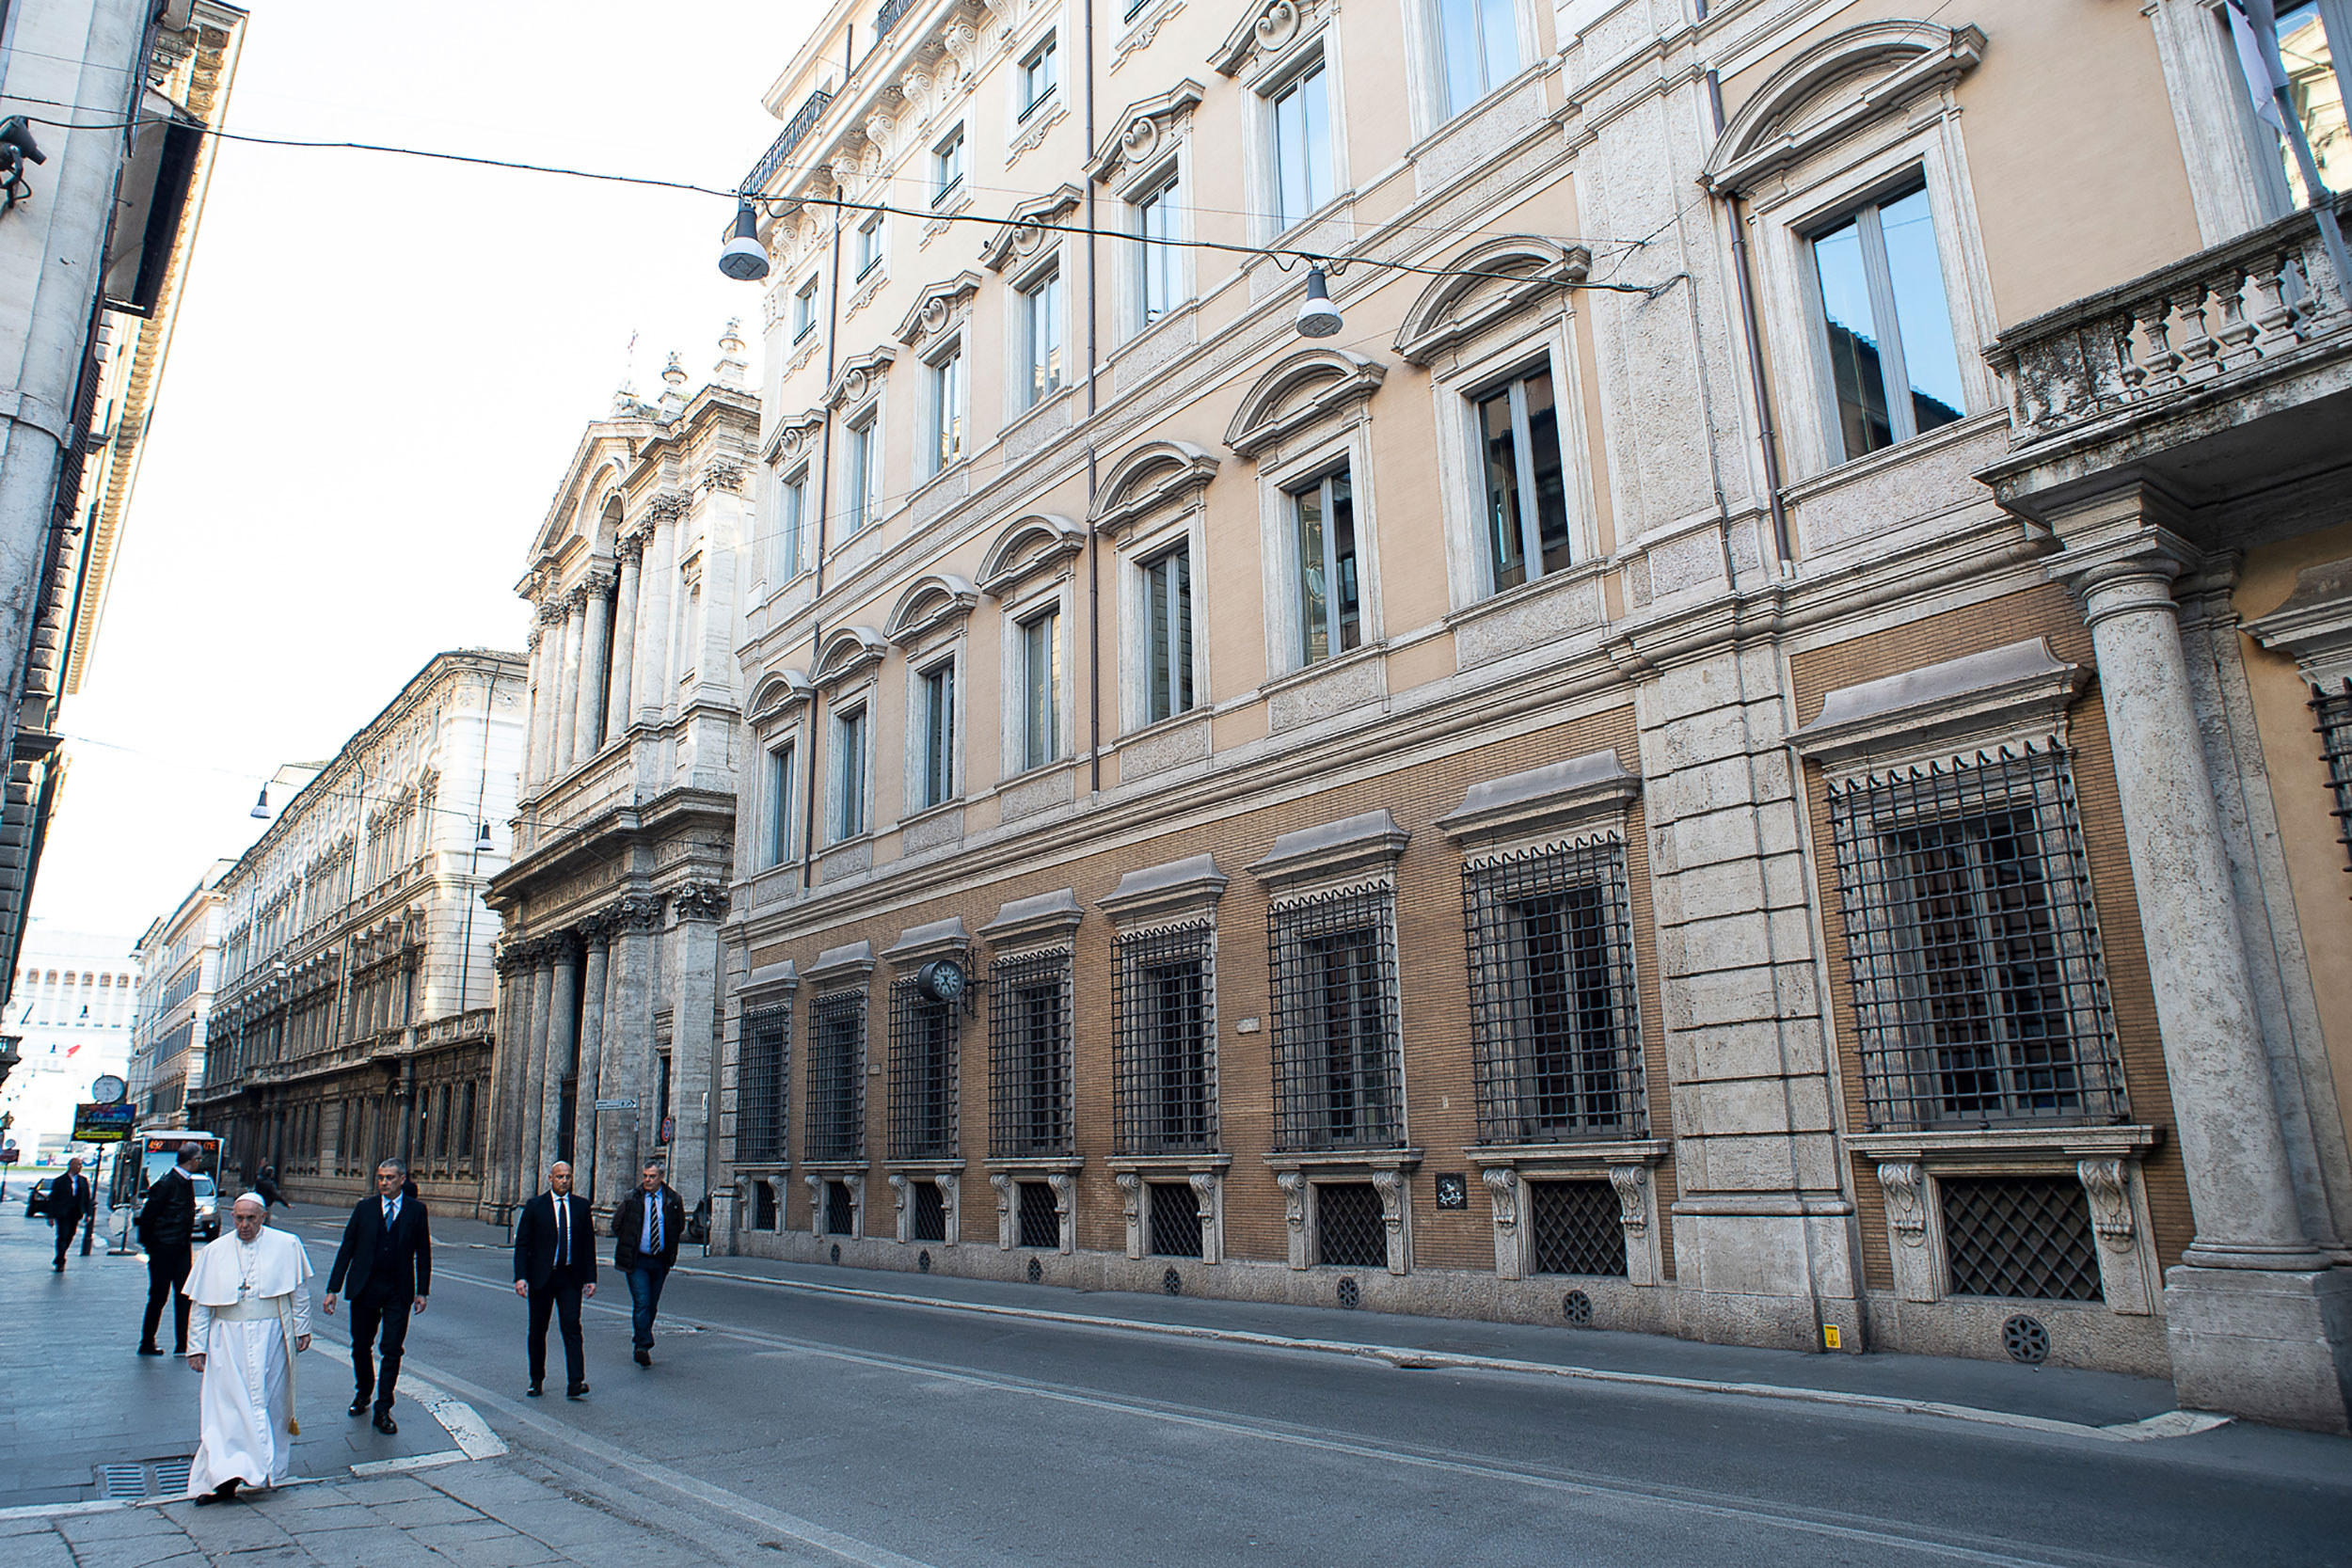 Pope Francis walks down an empty street in the Rome on March 15.